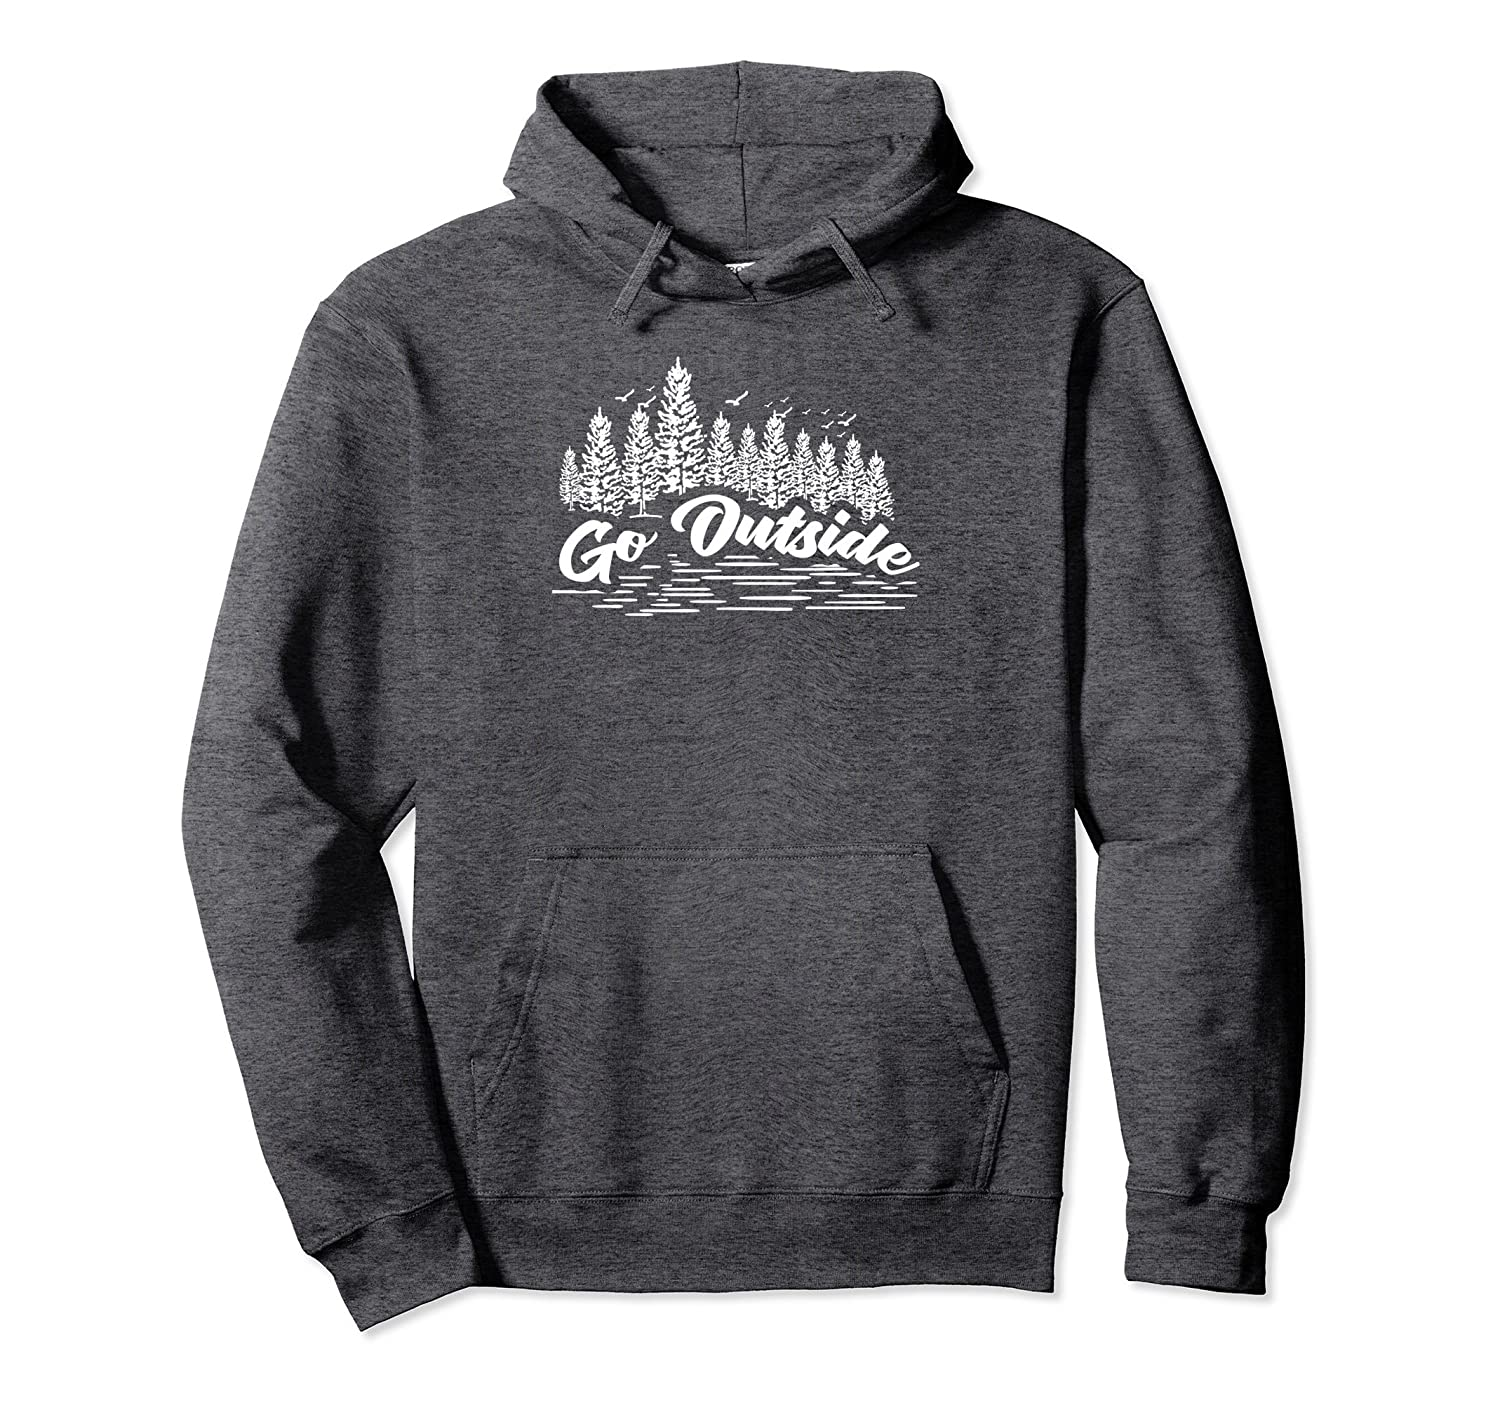 Go Outside Outdoor Adventure Nature Life Hoodie-Newstyleth